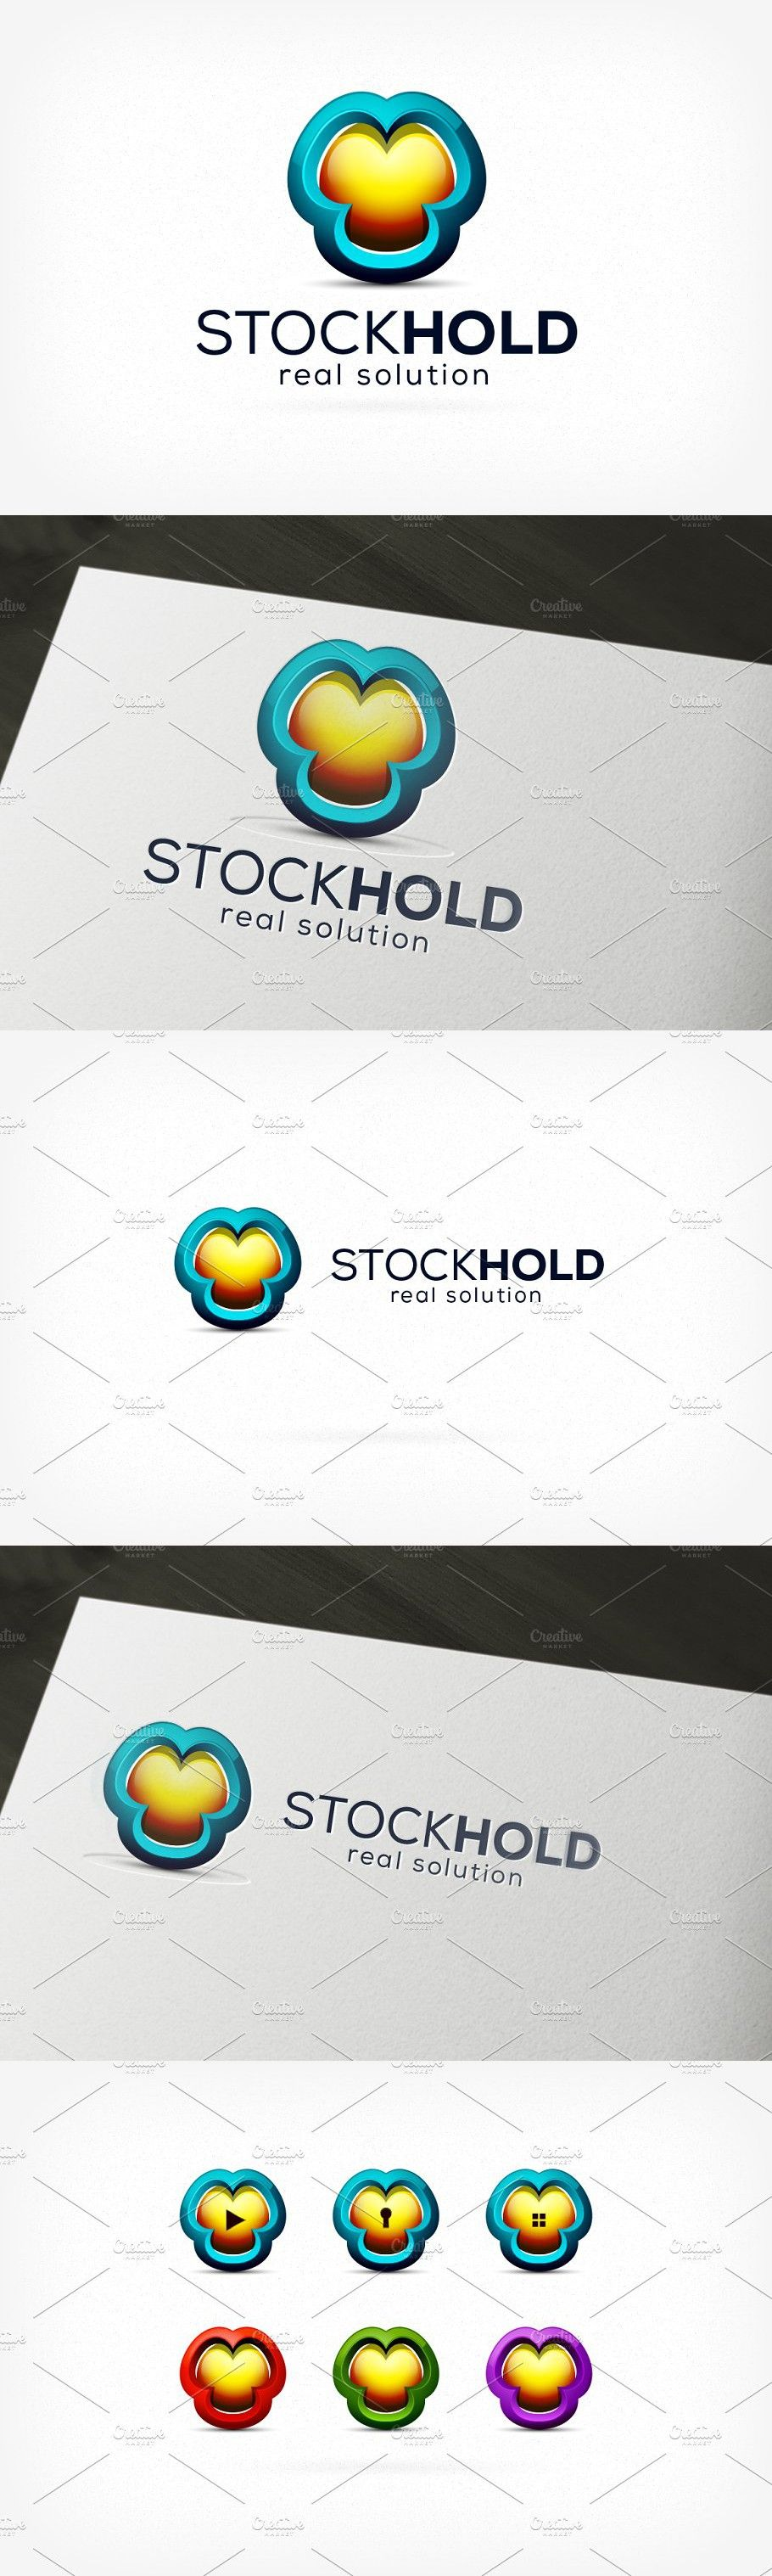 3D Stock Hold Logo in 2020 Logos, Print, Company names